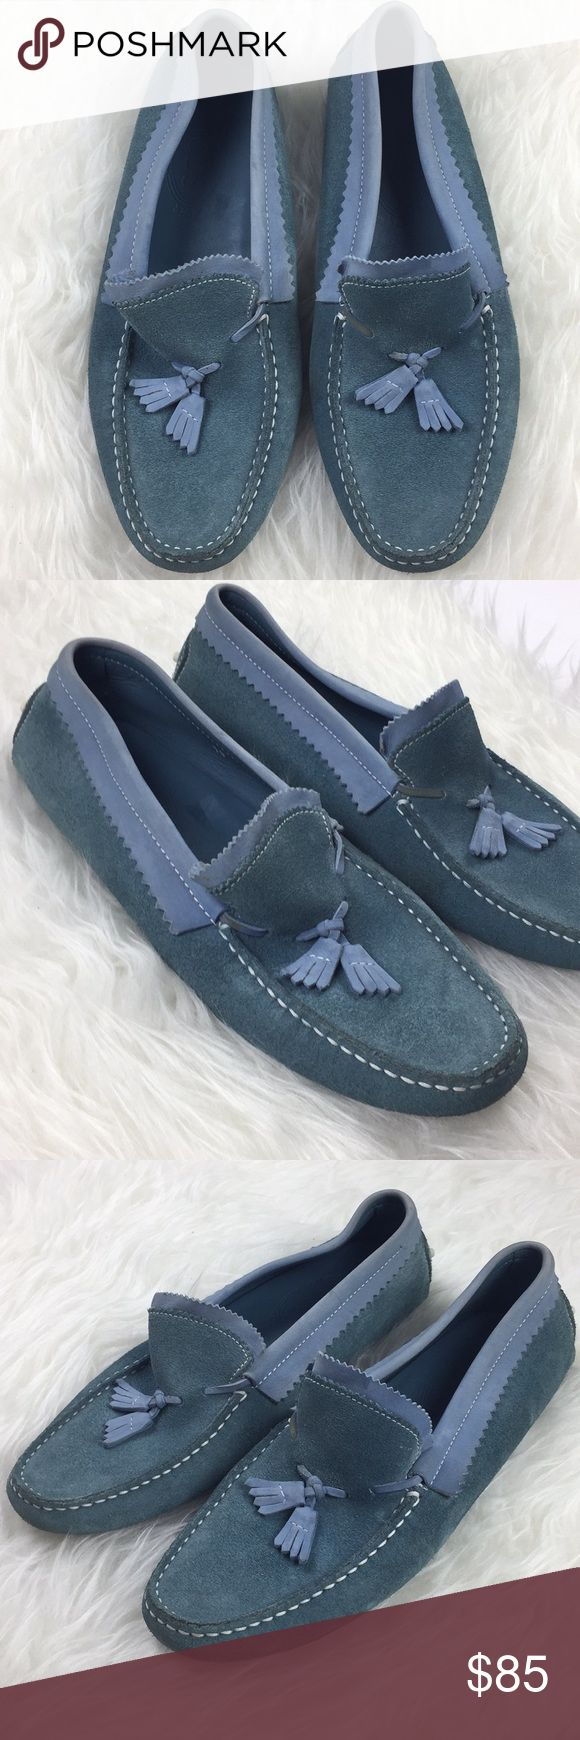 Tods Driving Moccasin Tassel Loafers Size 10 Tods Tassel Blue Suede Loafers Size 10 (similar to robins egg blue) - Made in Italy - Driving Shoes - wear on both soles (including rubber traction) and black markings on both soles shown in pictures - no major Suede markings except for close up marks in last picture - insoles in great condition -let me know if you have any questions on the color as different phones and computer screens may vary Tod's Shoes Flats & Loafers